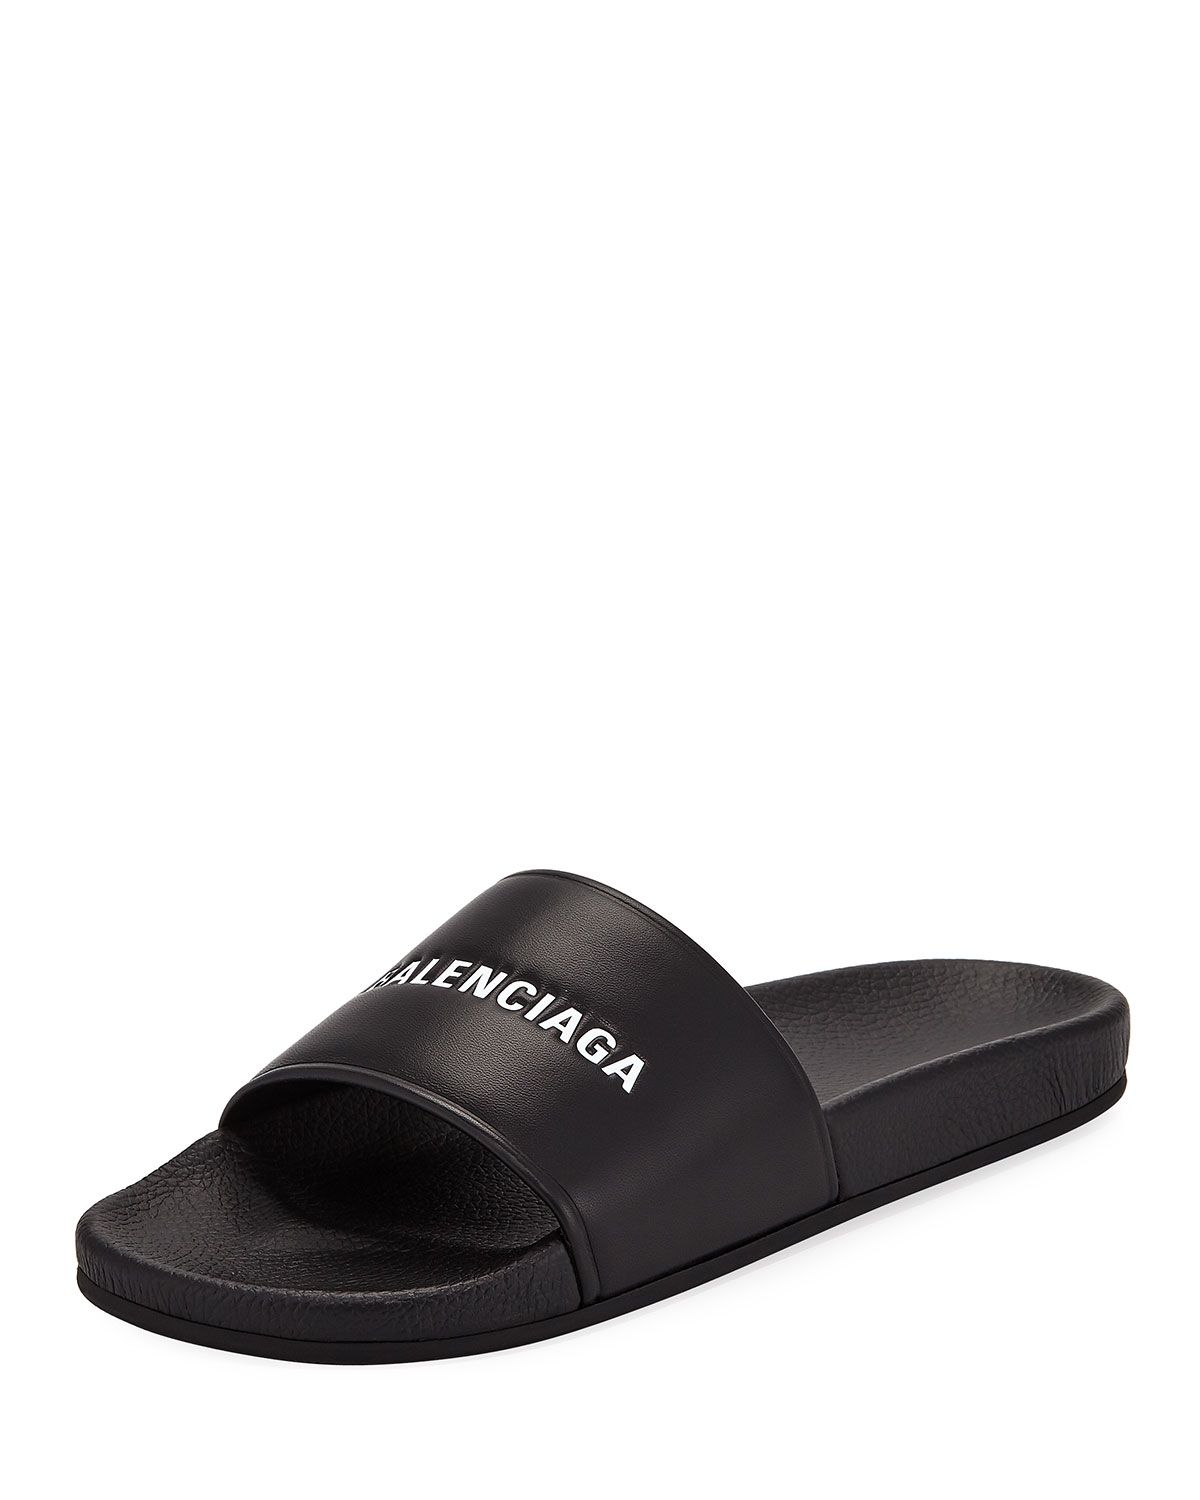 39a2a663530 BALENCIAGA EMBOSSED LOGO POOL SLIDE SANDAL.  balenciaga  shoes ...